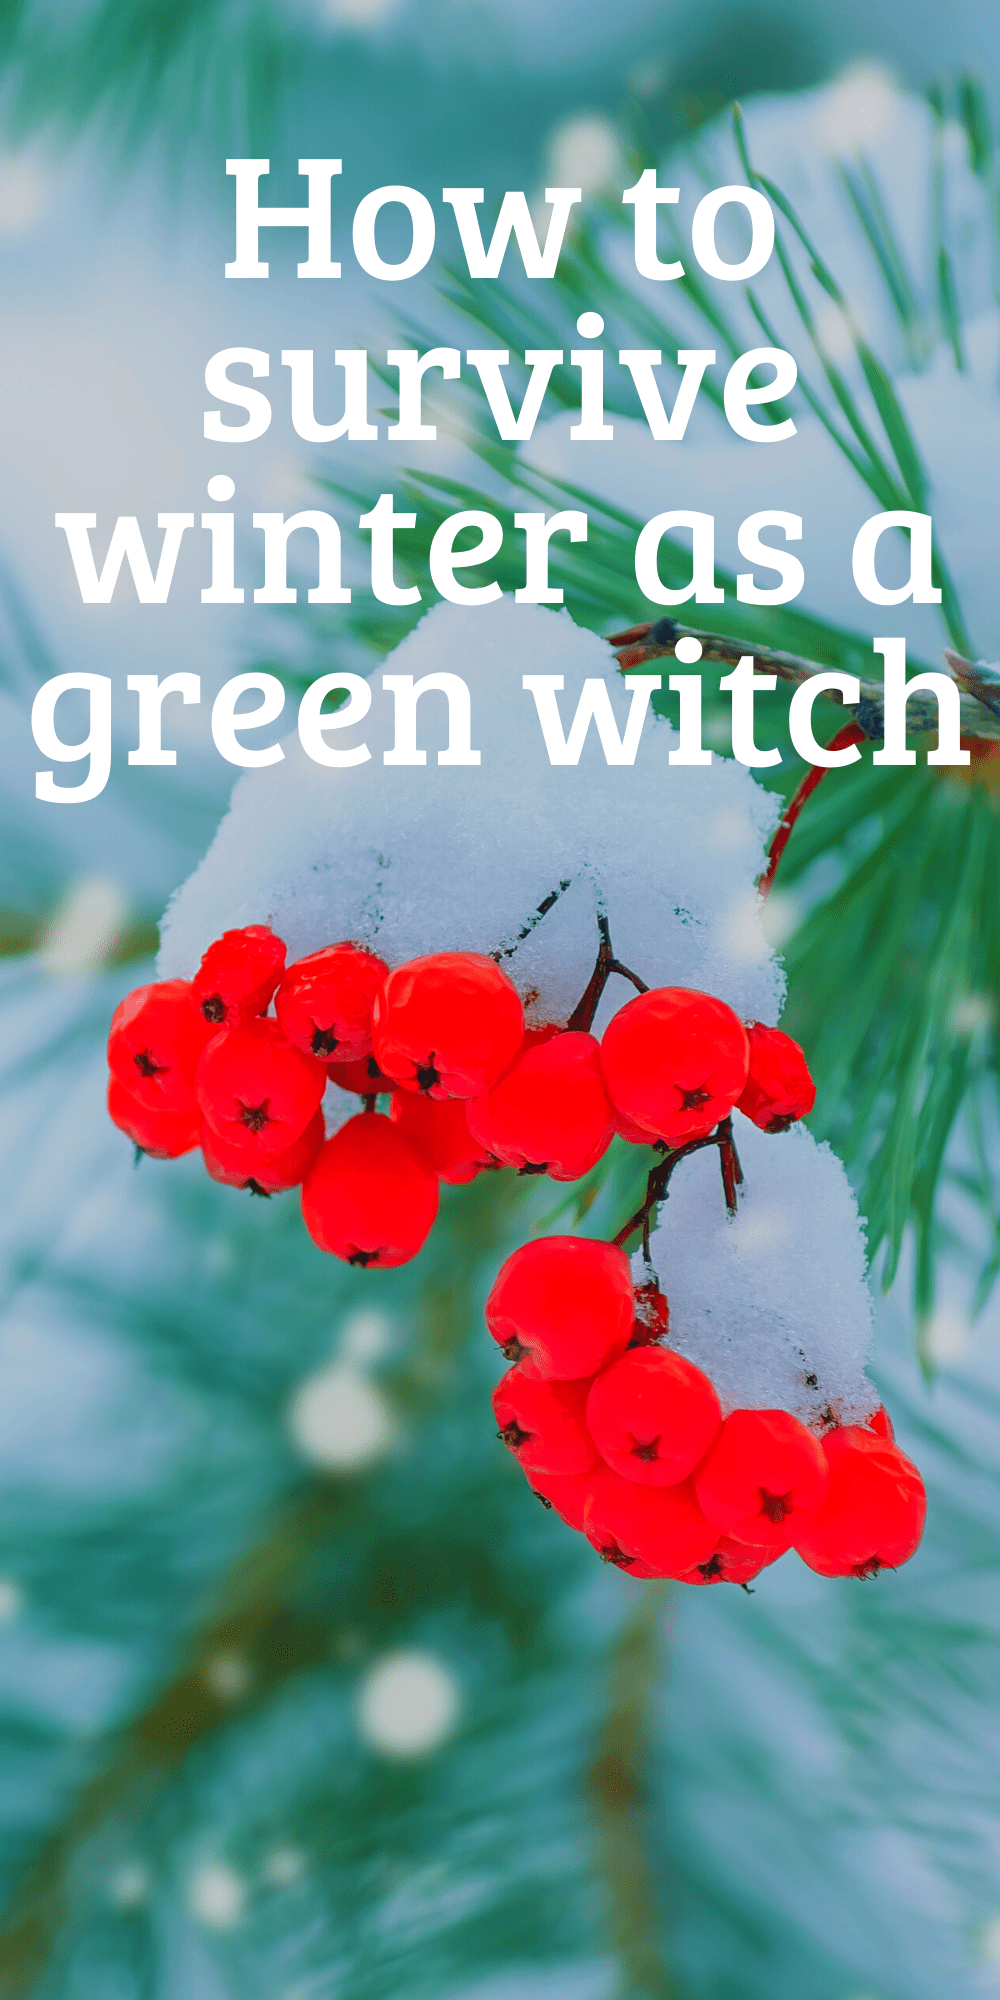 Yule Activities For Green Witches - Eclectic Witchcraft #greenwitchcraft How to survive winter as a green witch. Yule gift ideas, gardening tips for winter, green witchcraft when it's snowy outside. How to be surrounded by real plants even in the dead of winter. #yule #witch #greenwitch #witchcraft #christmas #pagan #paganism #wicca #garden #gardening #wreaths #christmastree #yuletree #poinsettia #herbaltea #greenwitchcraft